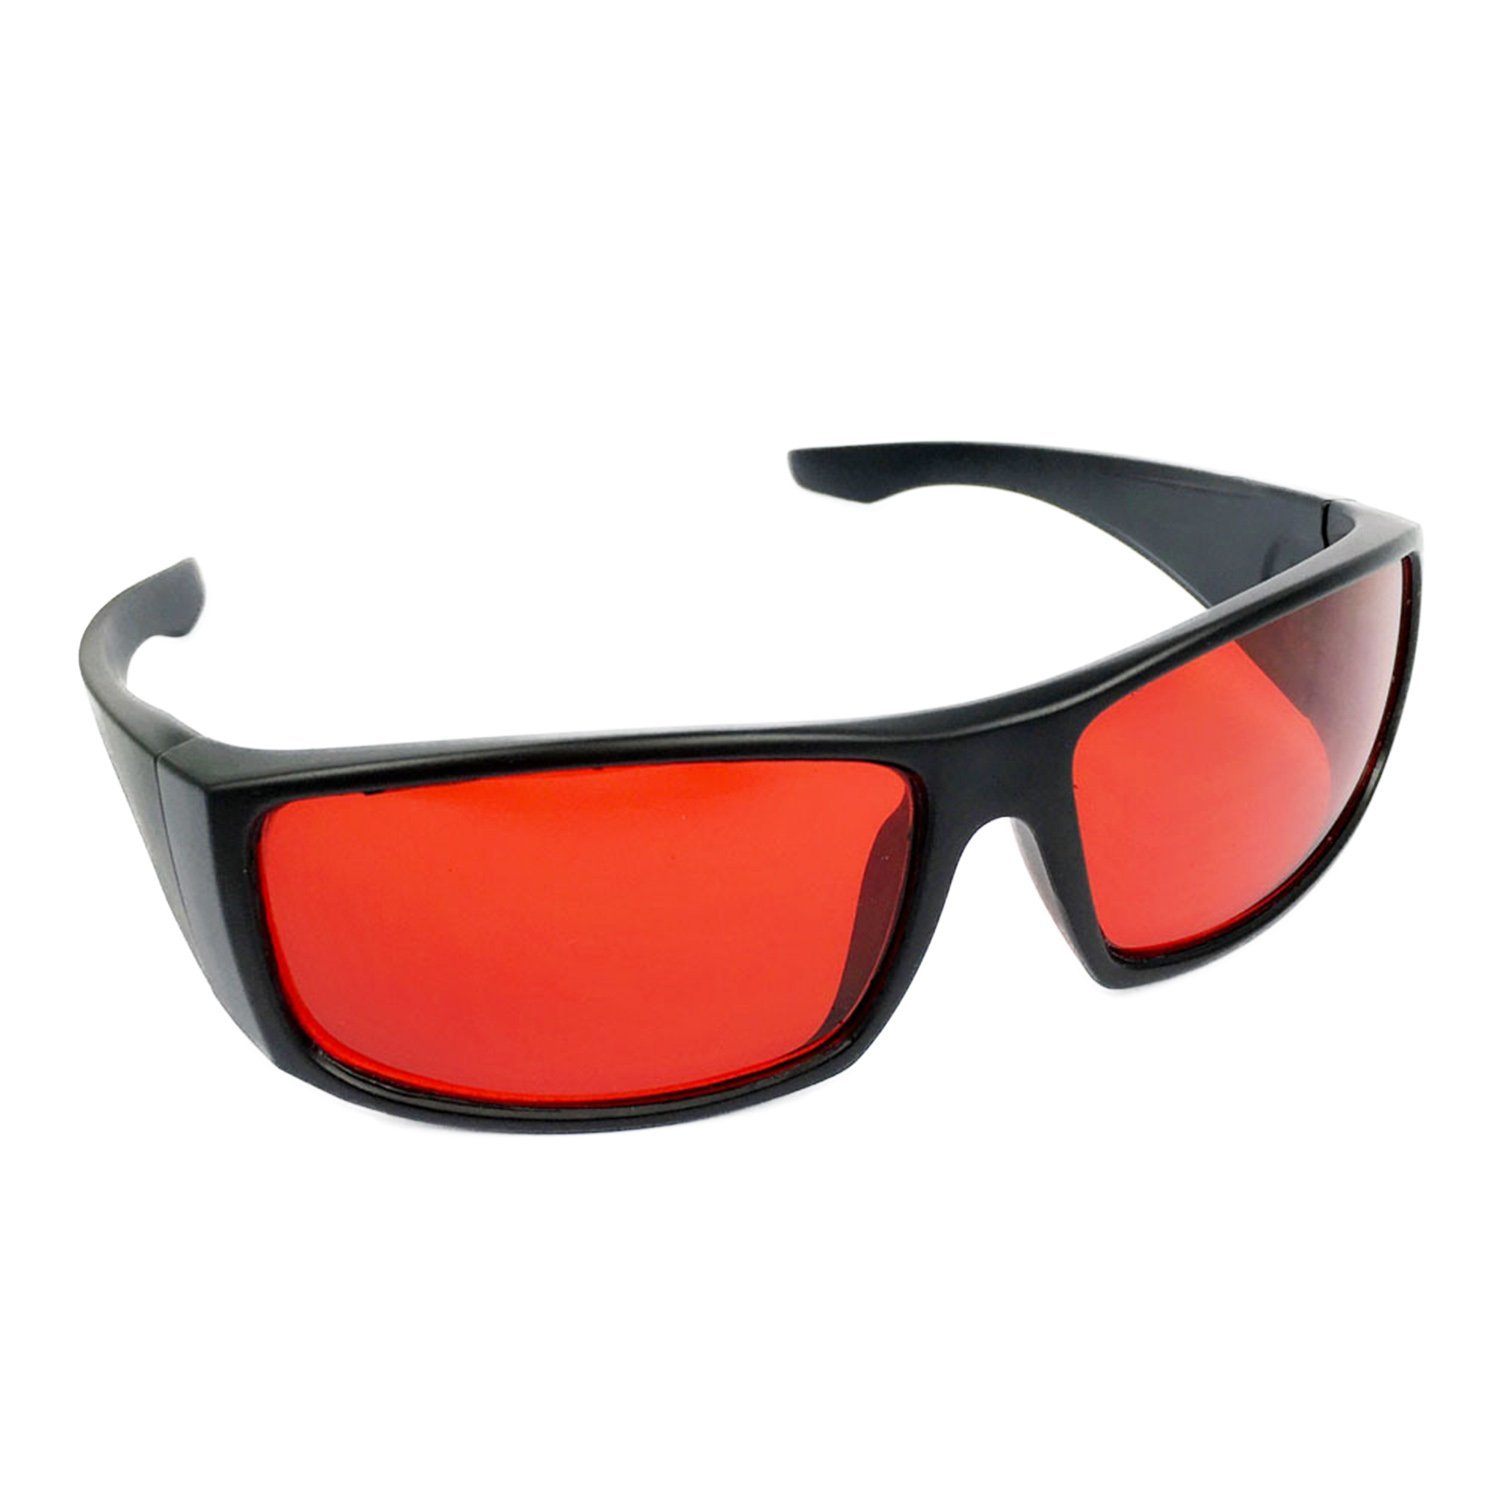 81a5702661e8 Get Quotations · WESTLINK Color Blind Glasses For Red Green Corrective